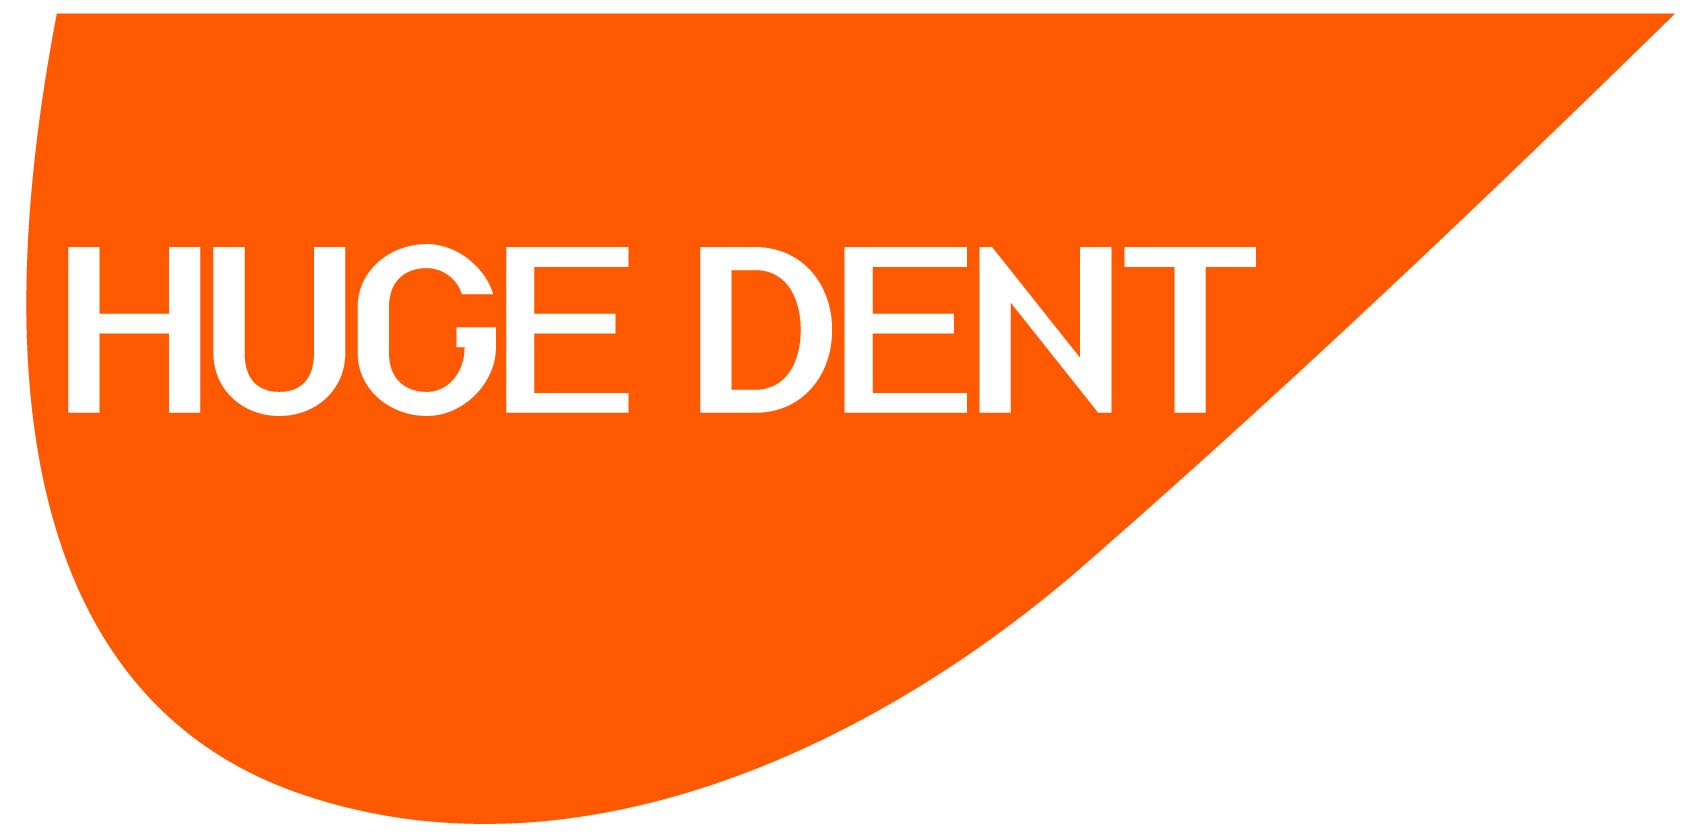 China Dental, Acrylic, Teeth supplier - Huge Dental Material Co., Ltd.: yousearch.co/images/dental+companies